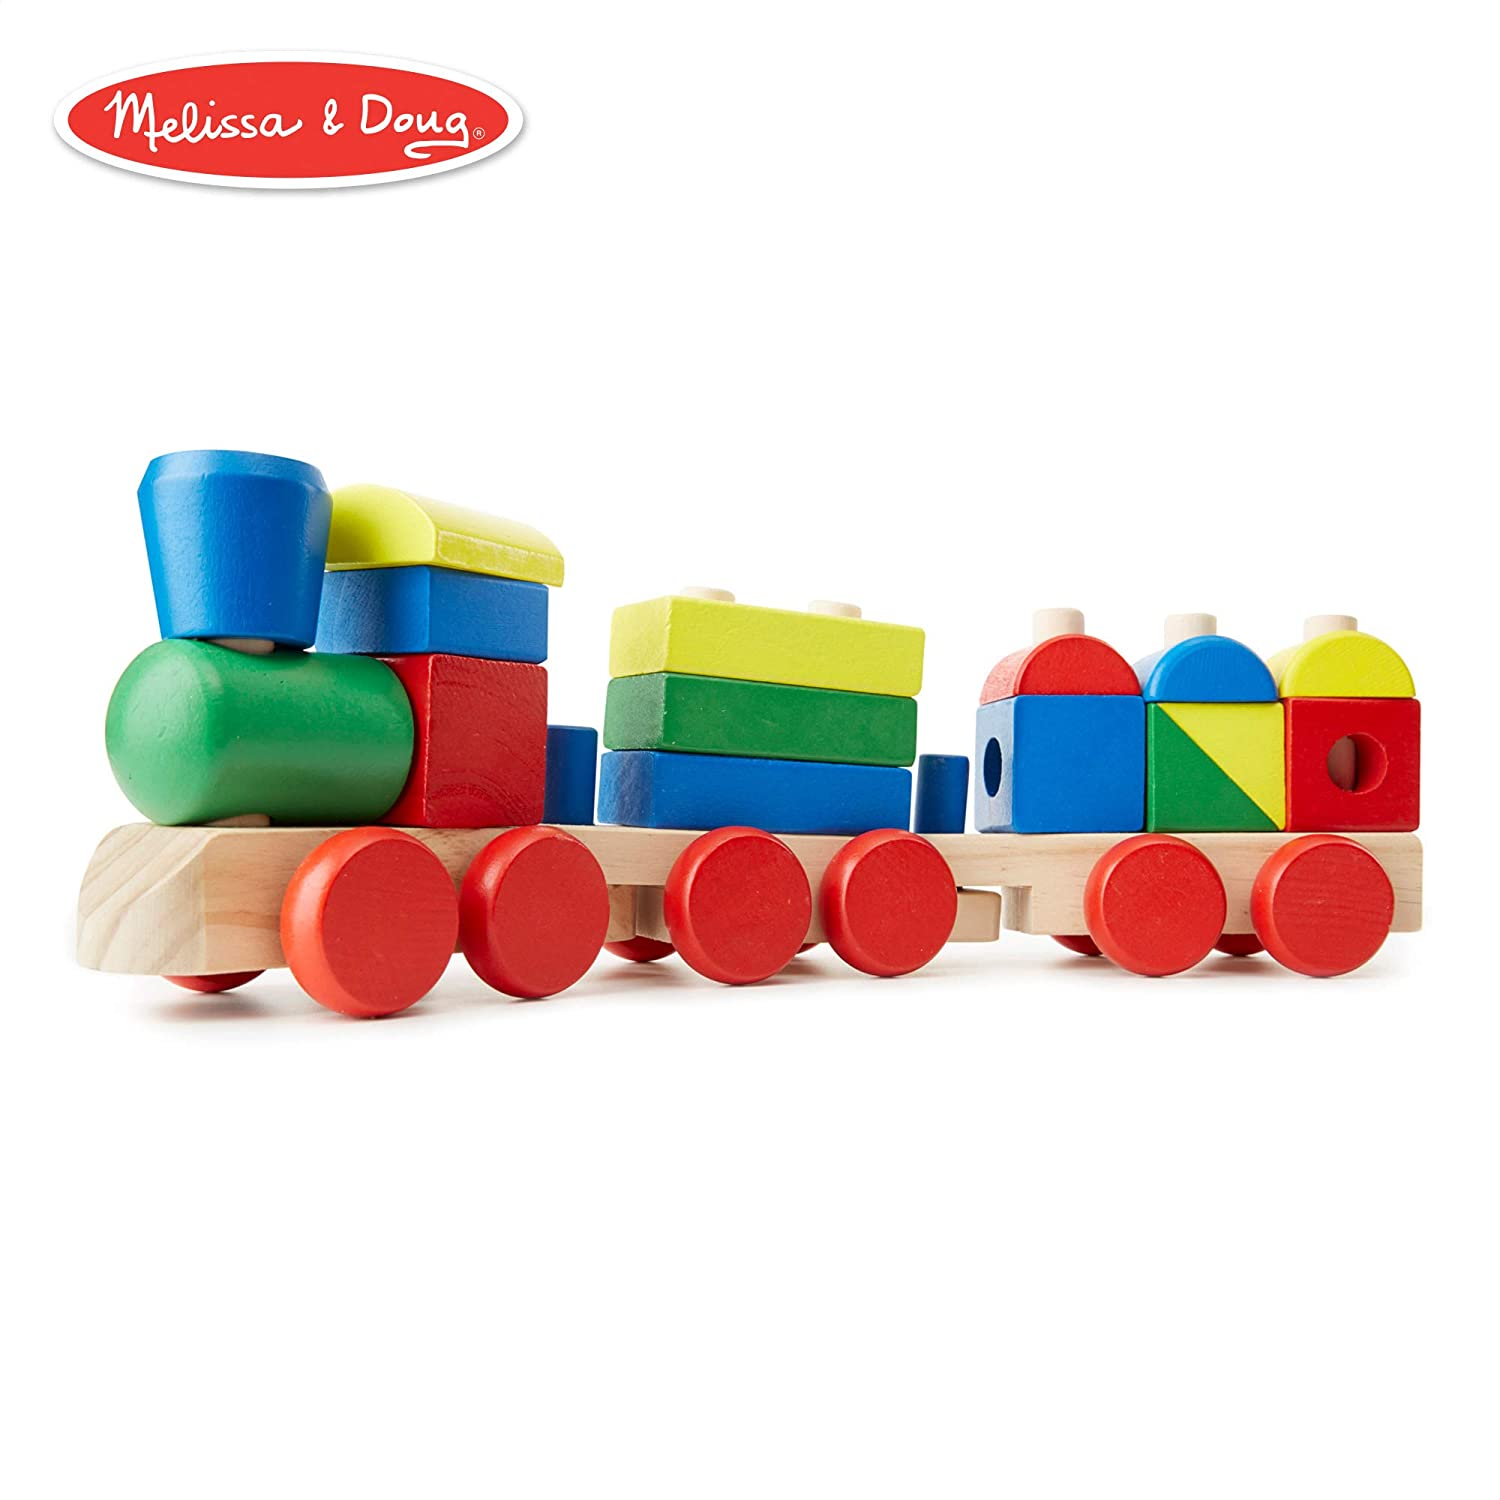 Top 9 Best Train Sets for Toddlers Reviews in 2021 12